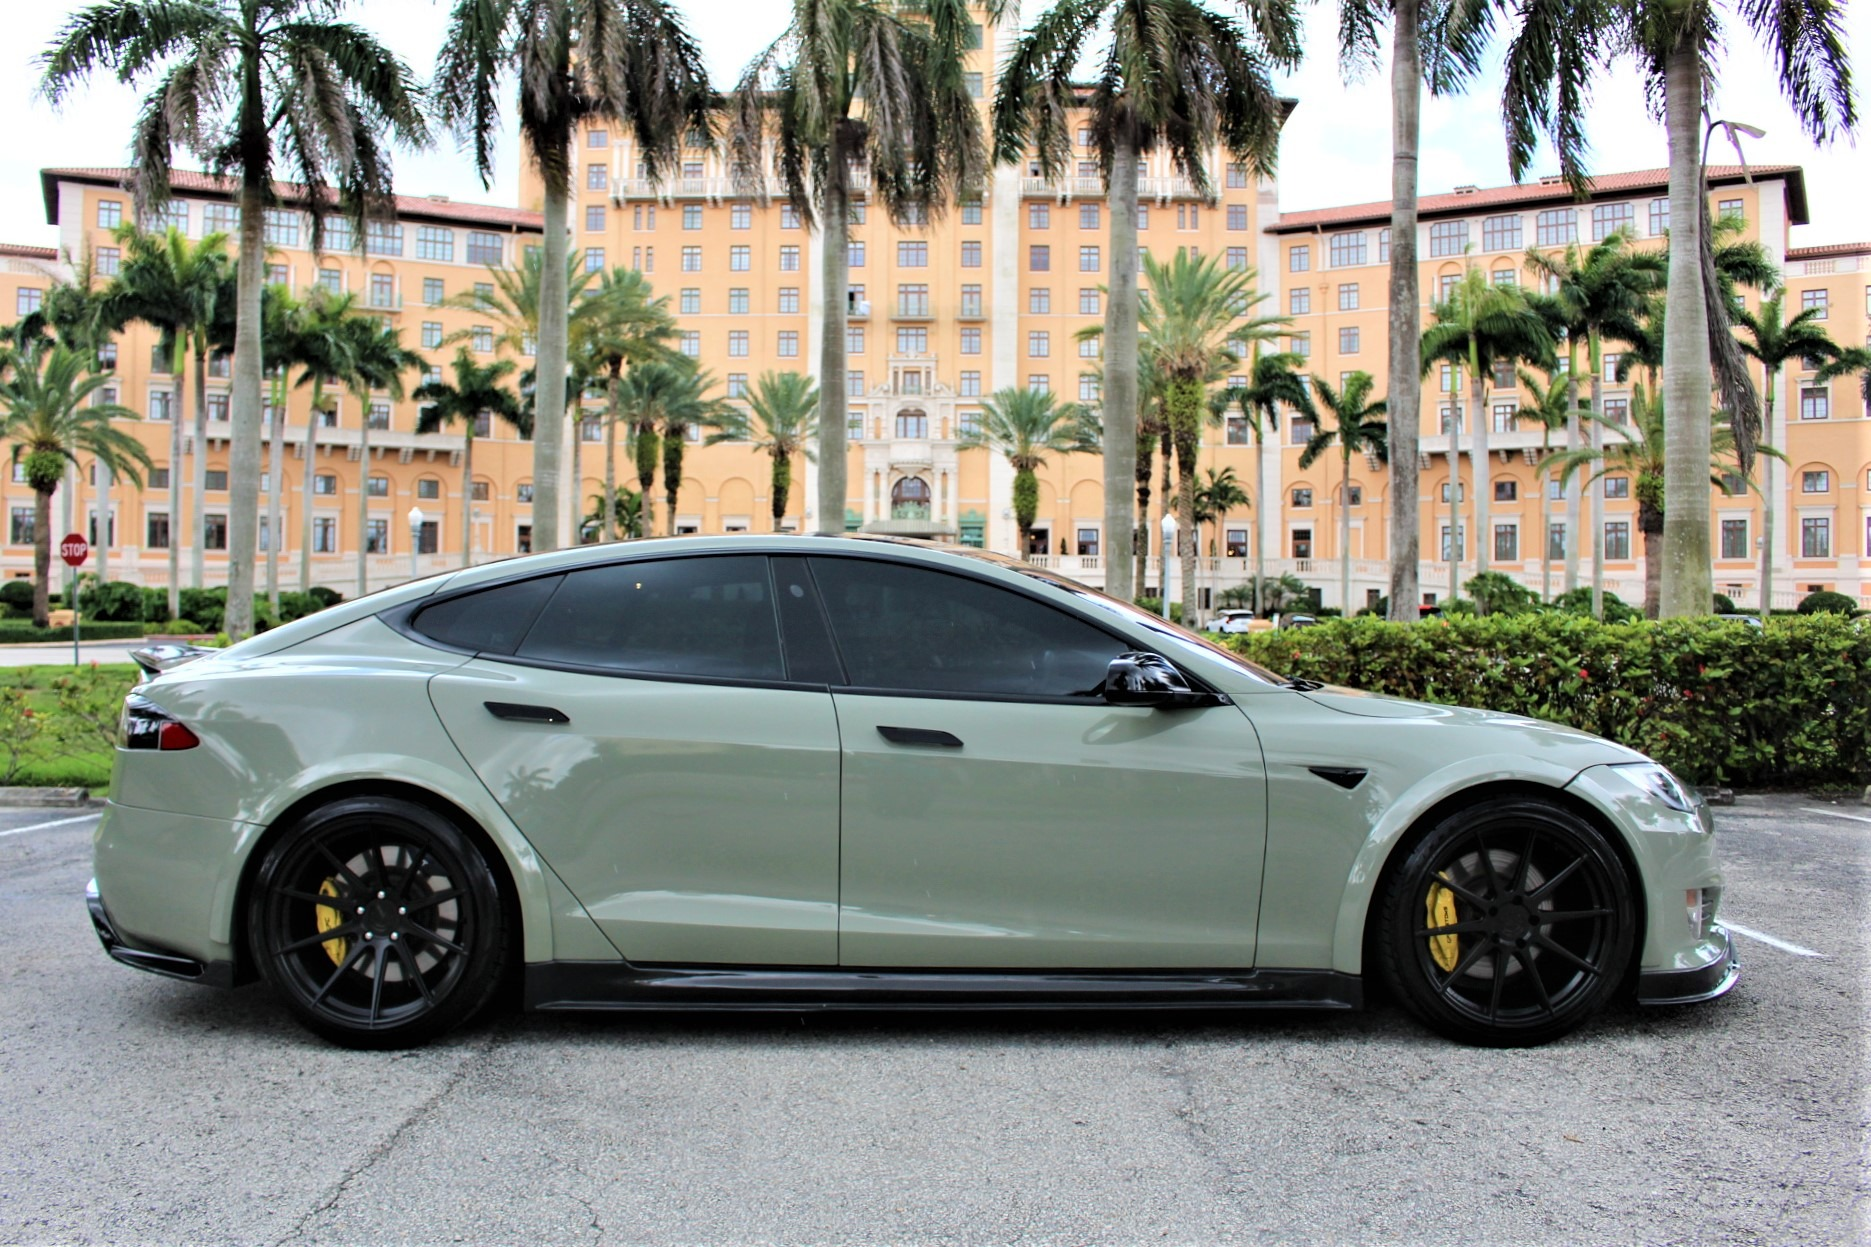 Used 2018 Tesla Model S P100D for sale $87,850 at The Gables Sports Cars in Miami FL 33146 2